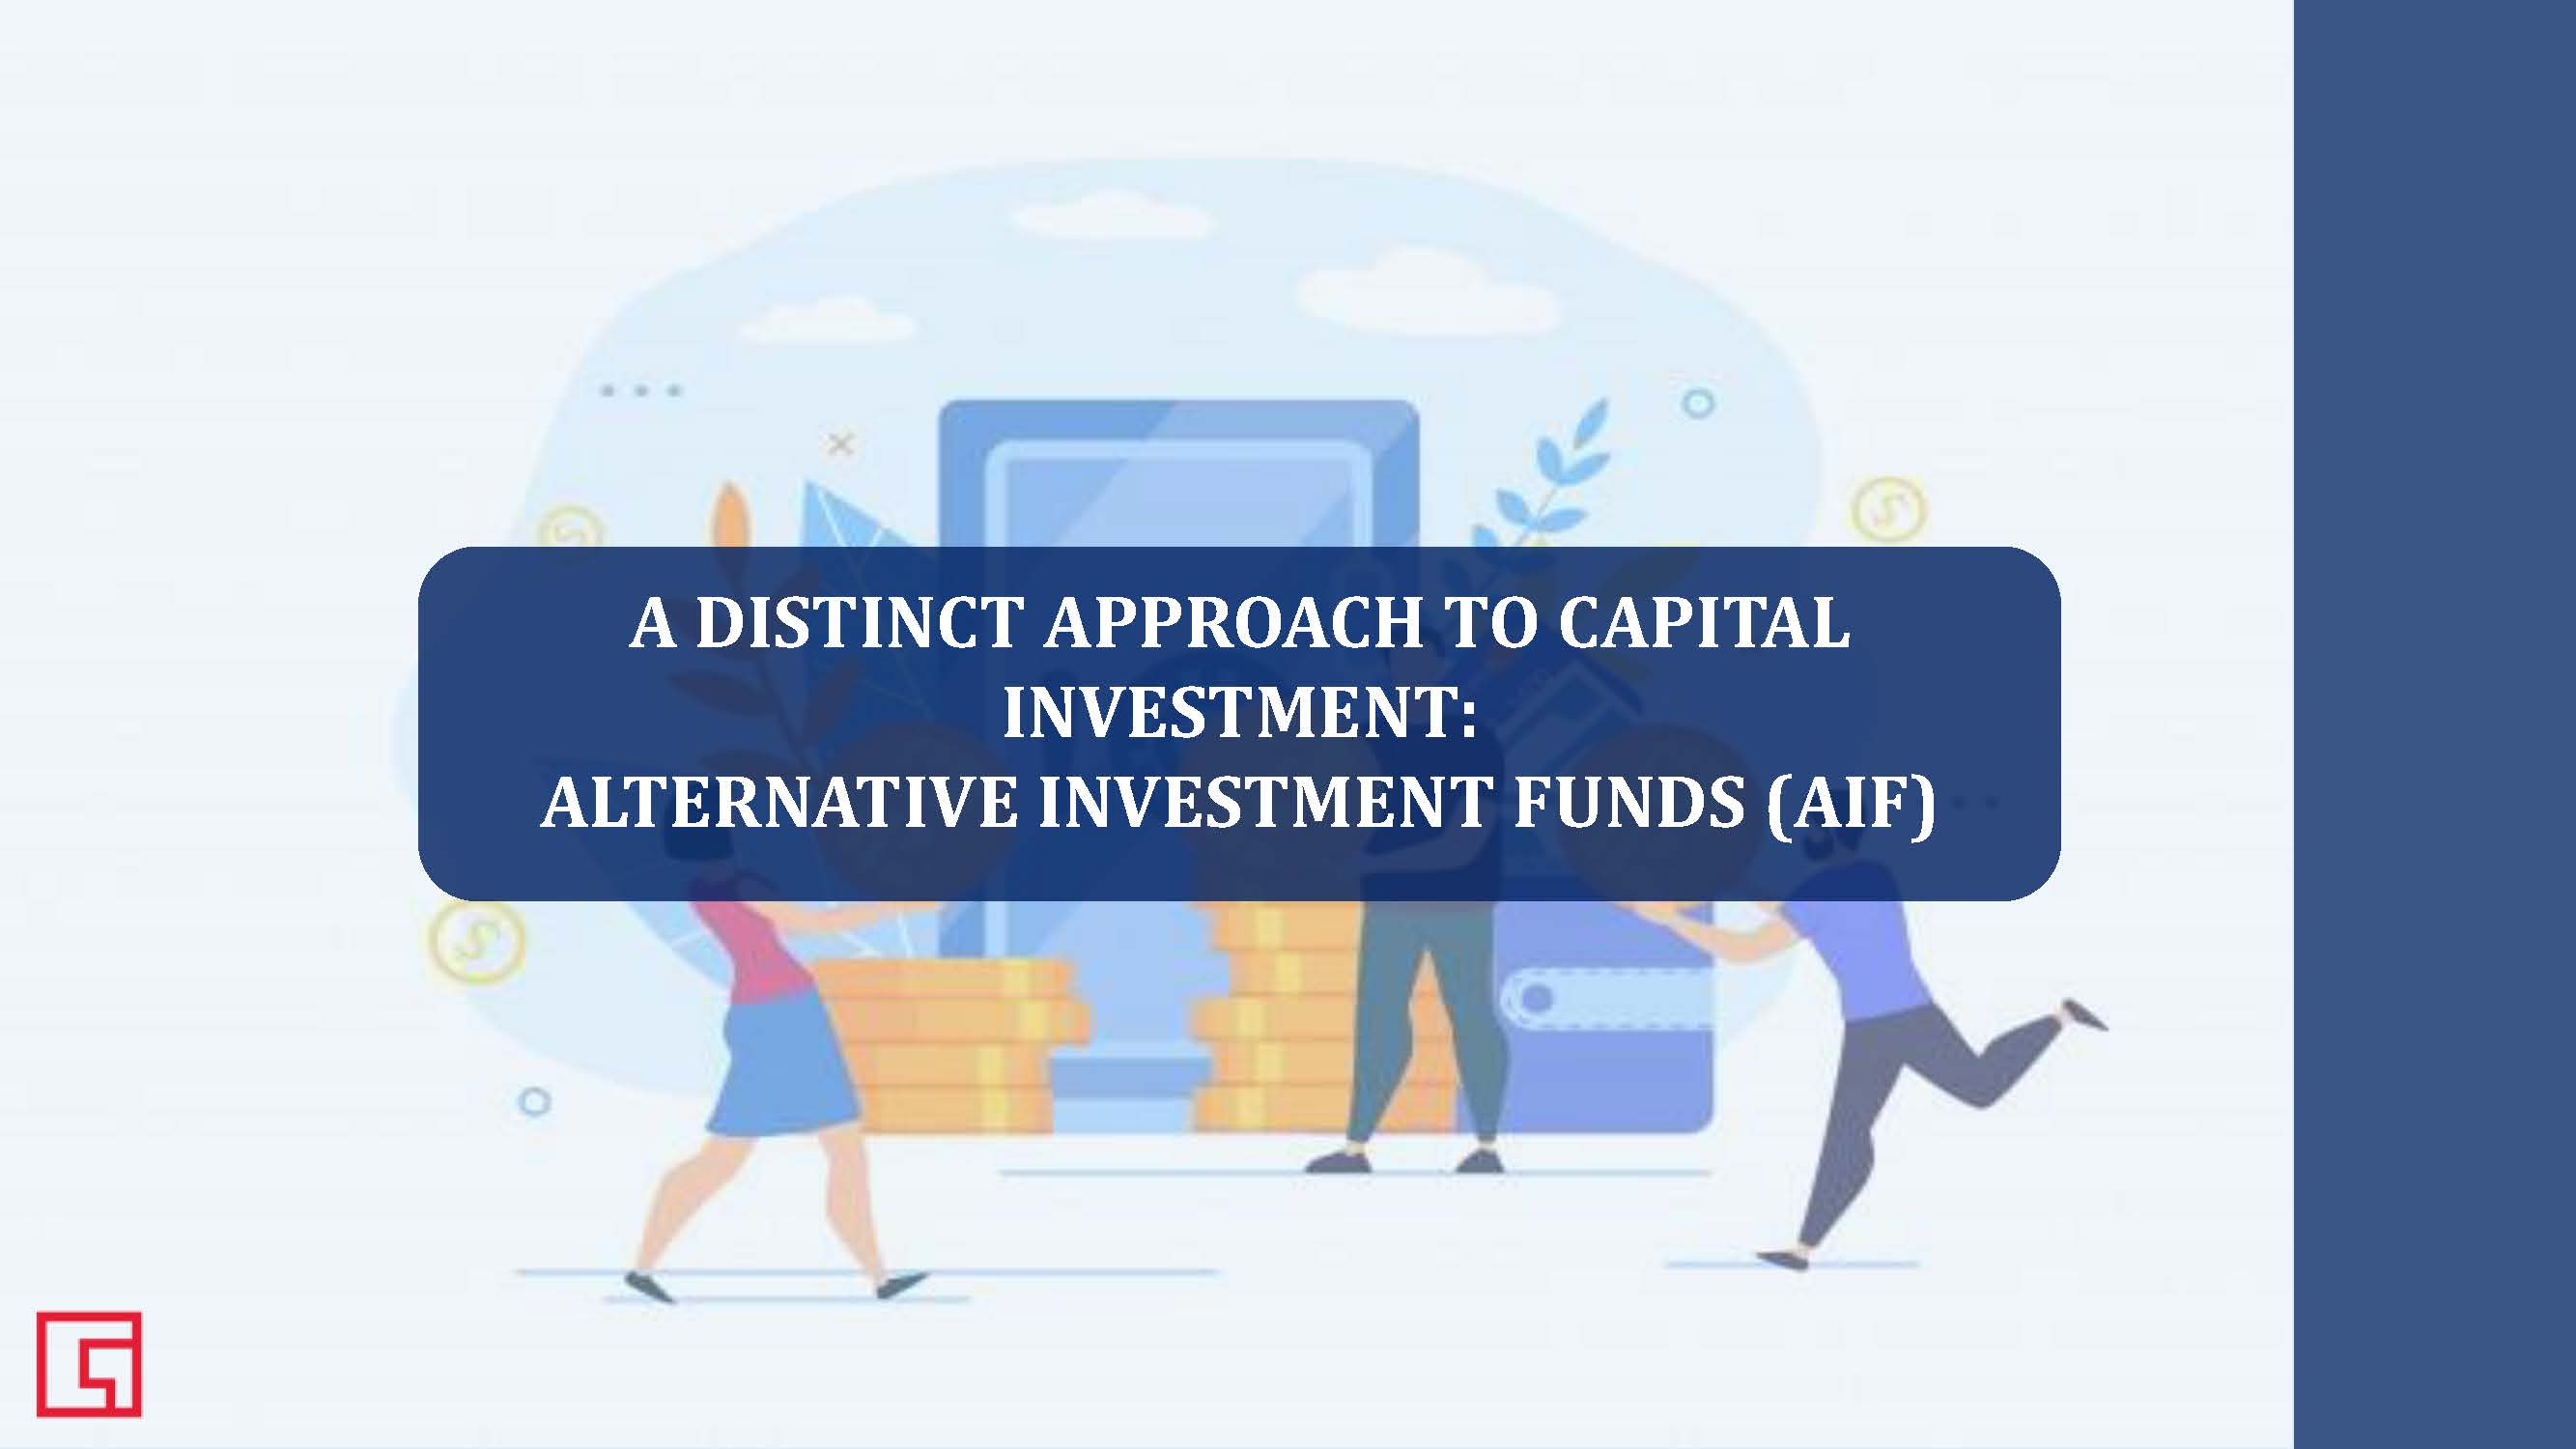 A Distinct Approach to Capital Investment: Alternative Investment Funds